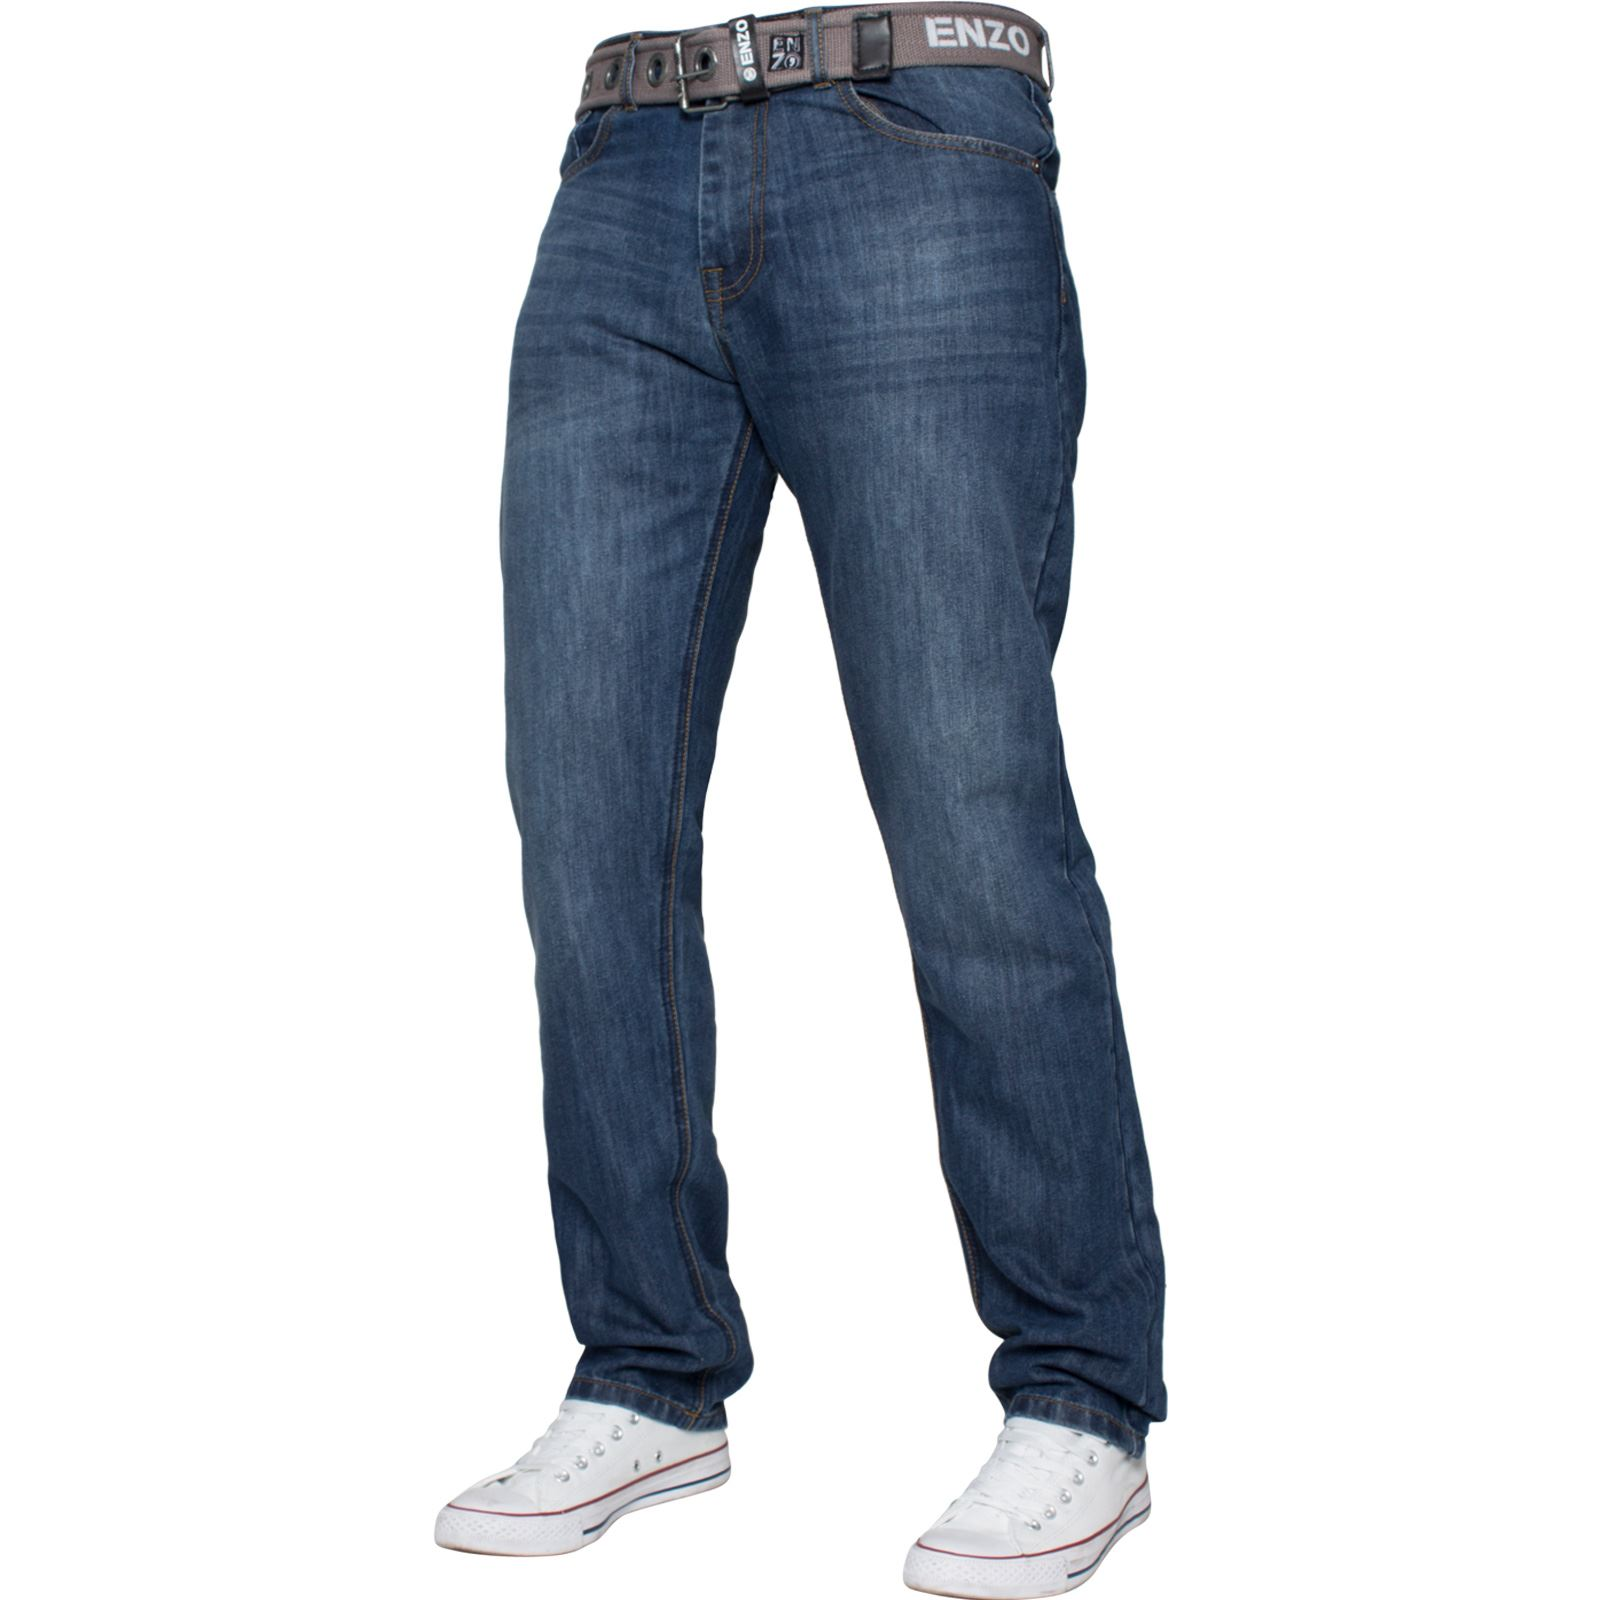 Enzo-Mens-Designer-Jeans-Regular-Fit-Denim-Pants-Big-Tall-All-Waist-Sizes thumbnail 6